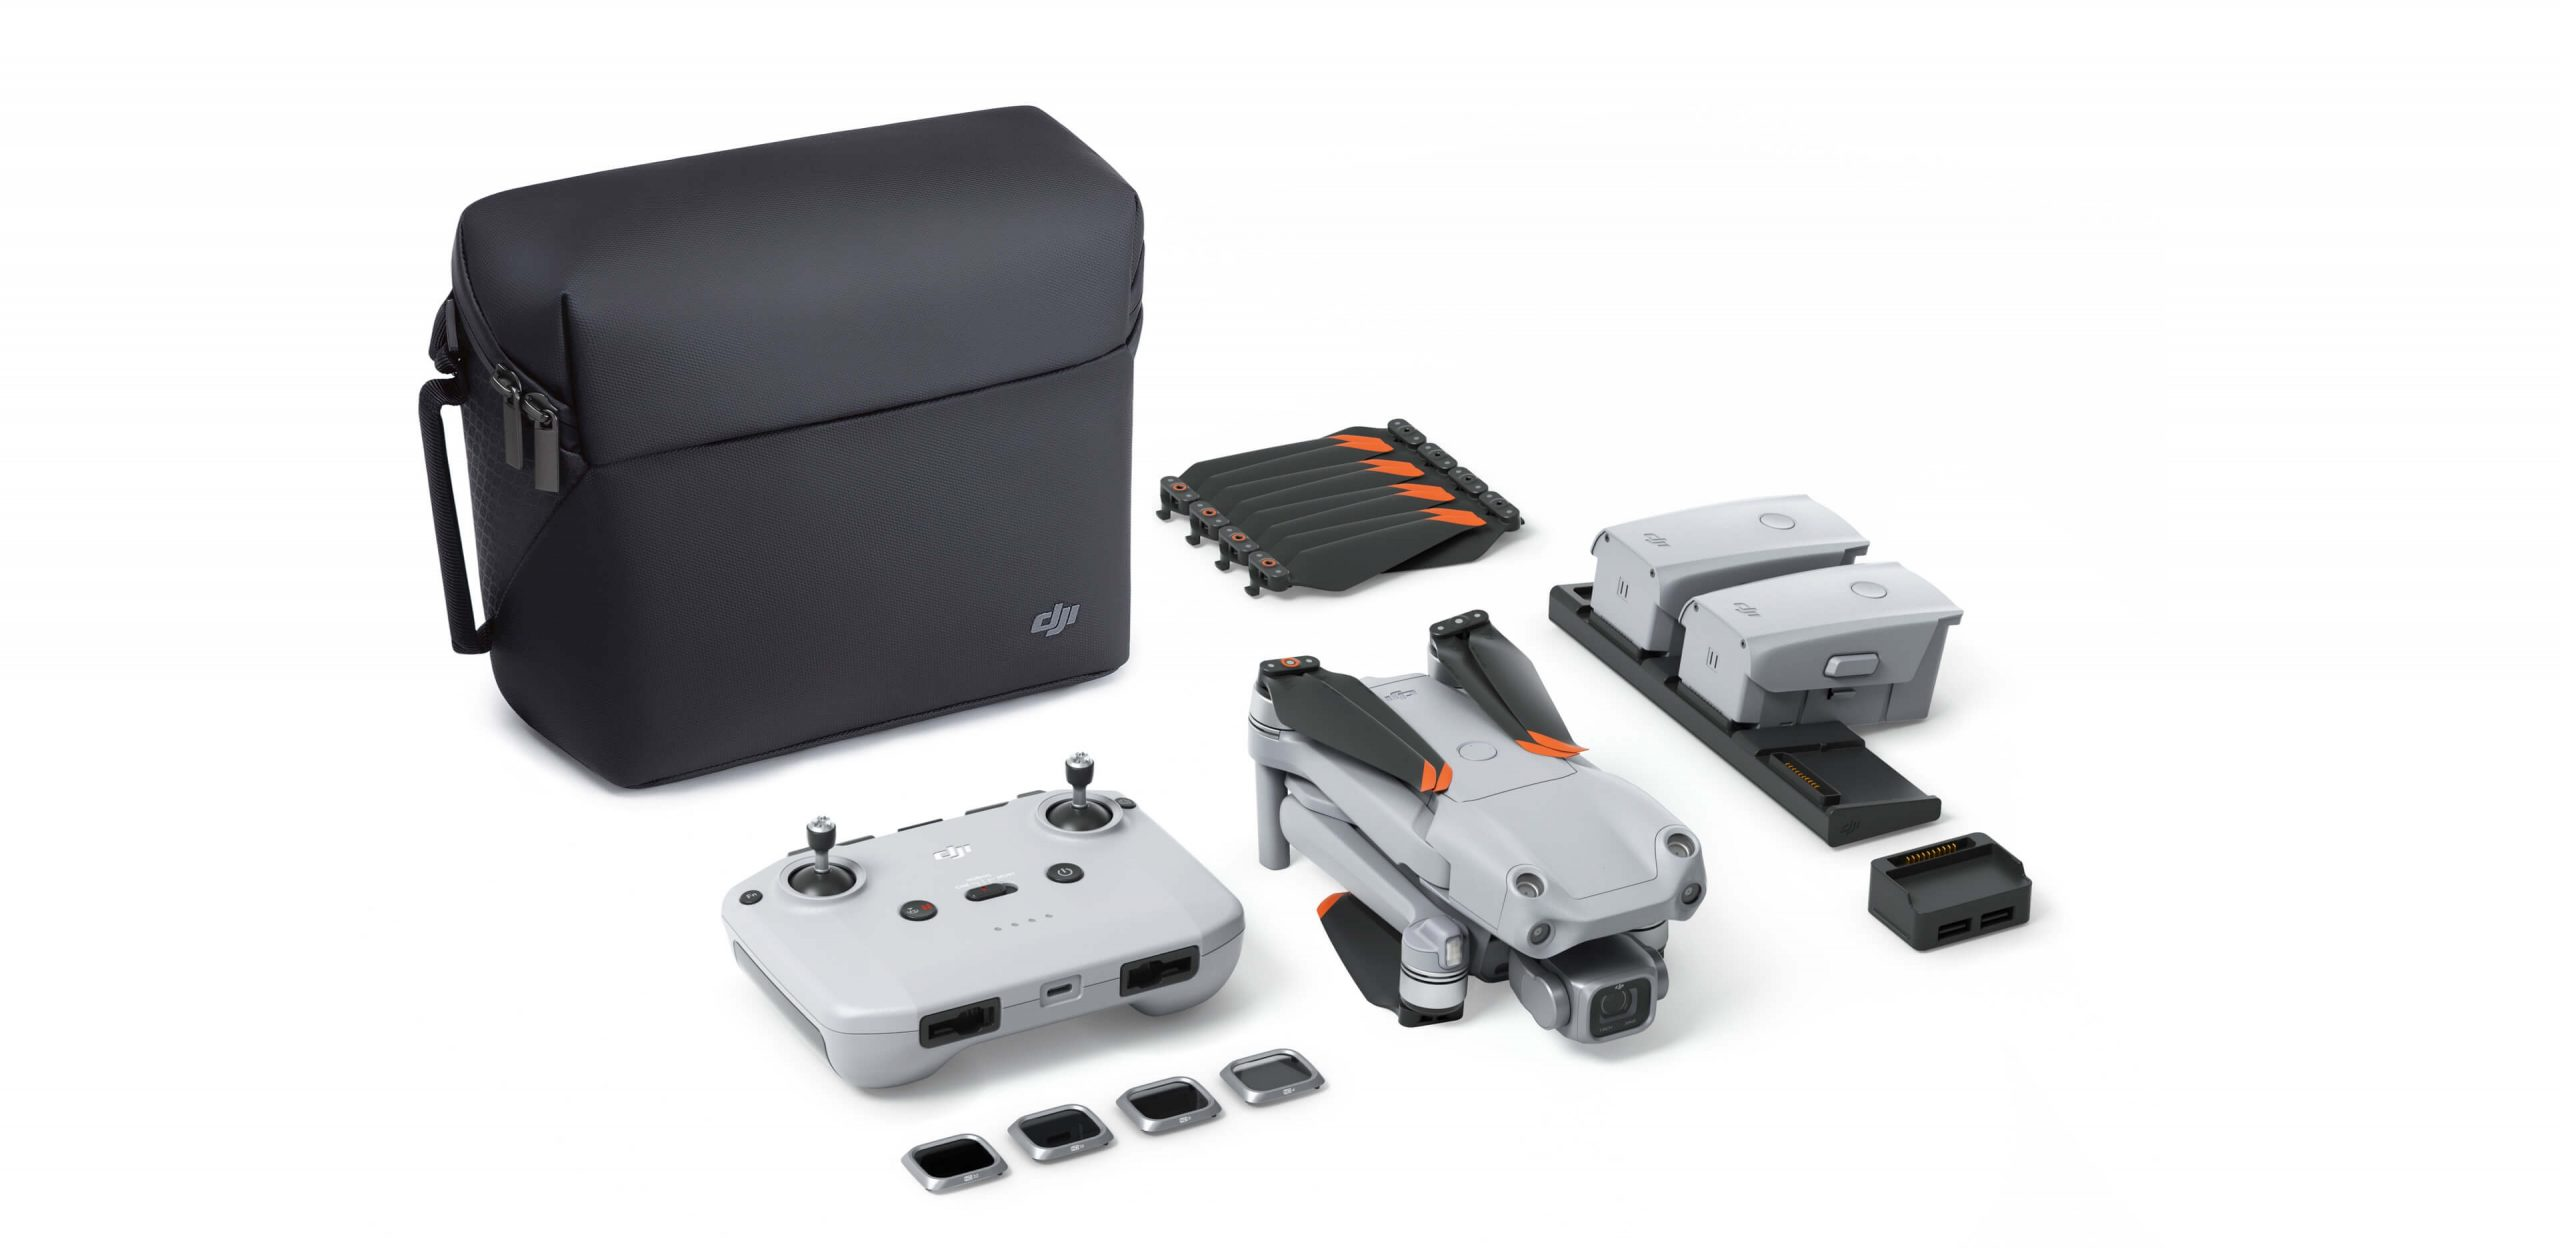 DJI Air 2S Fly More Combo Pic